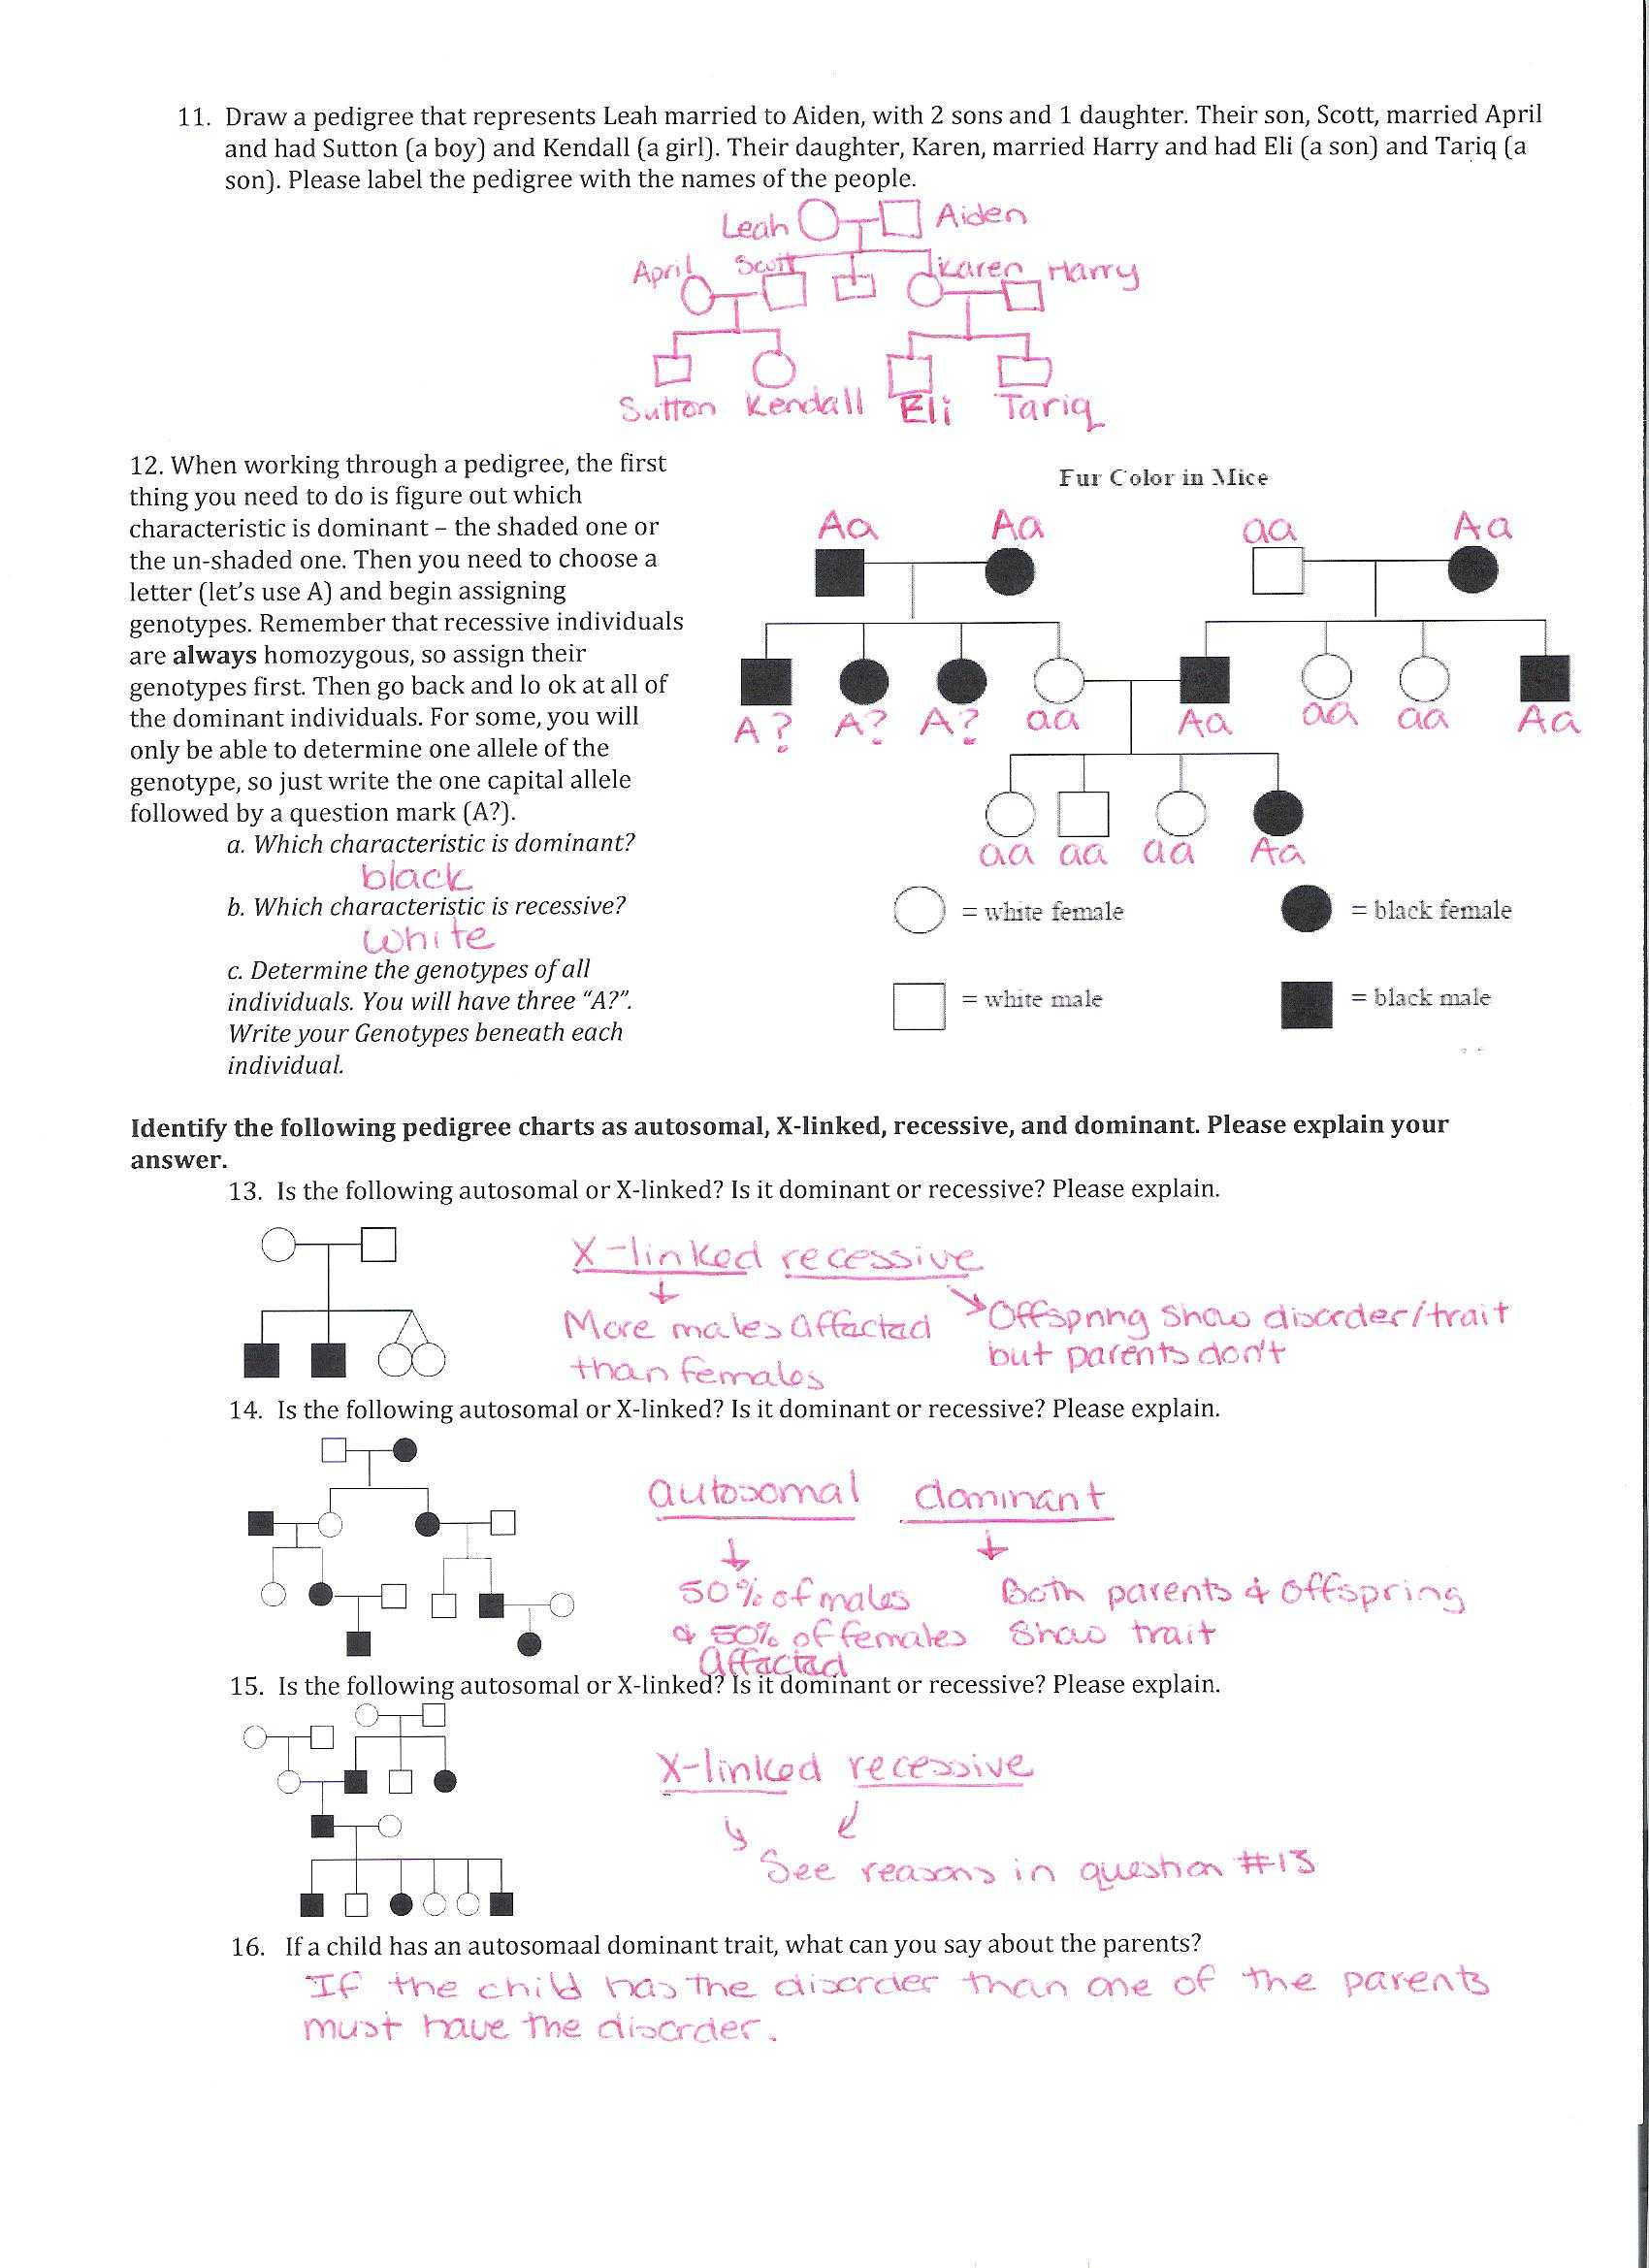 Worksheet Factoring Trinomials Answers Key as Well as Genetics Pedigree Worksheet the Best Worksheets Image Collection